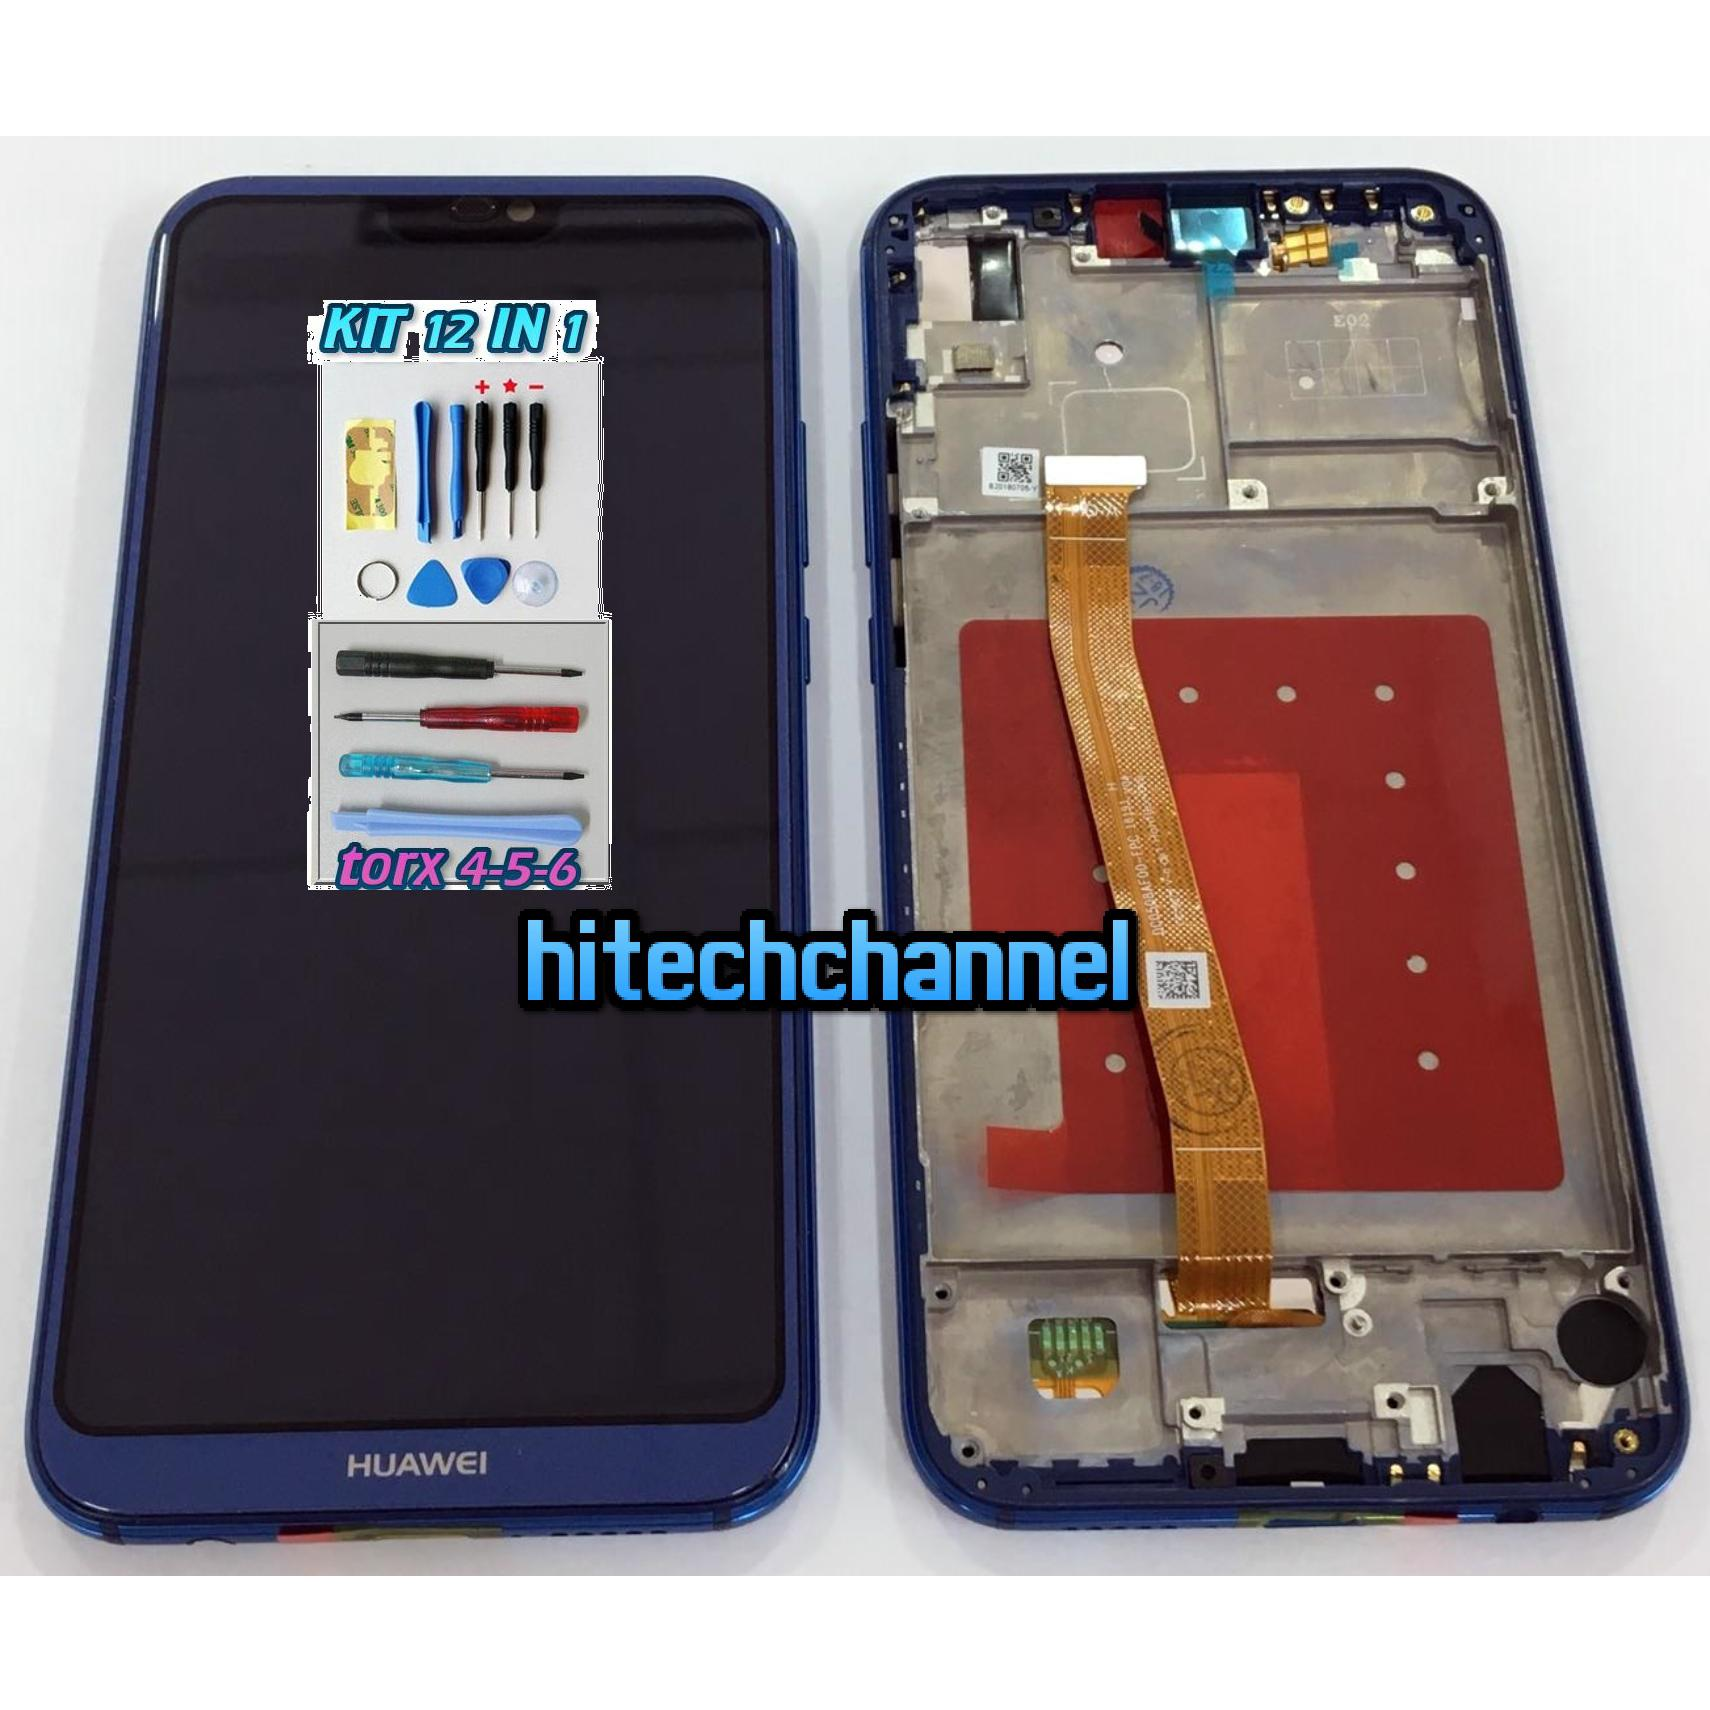 TOUCH SCREEN VETRO LCD FRAME DISPLAY BLU PER Huawei P20 LITE ANE-LX1+colla B7000 kit 9 in 1 e biadesivo